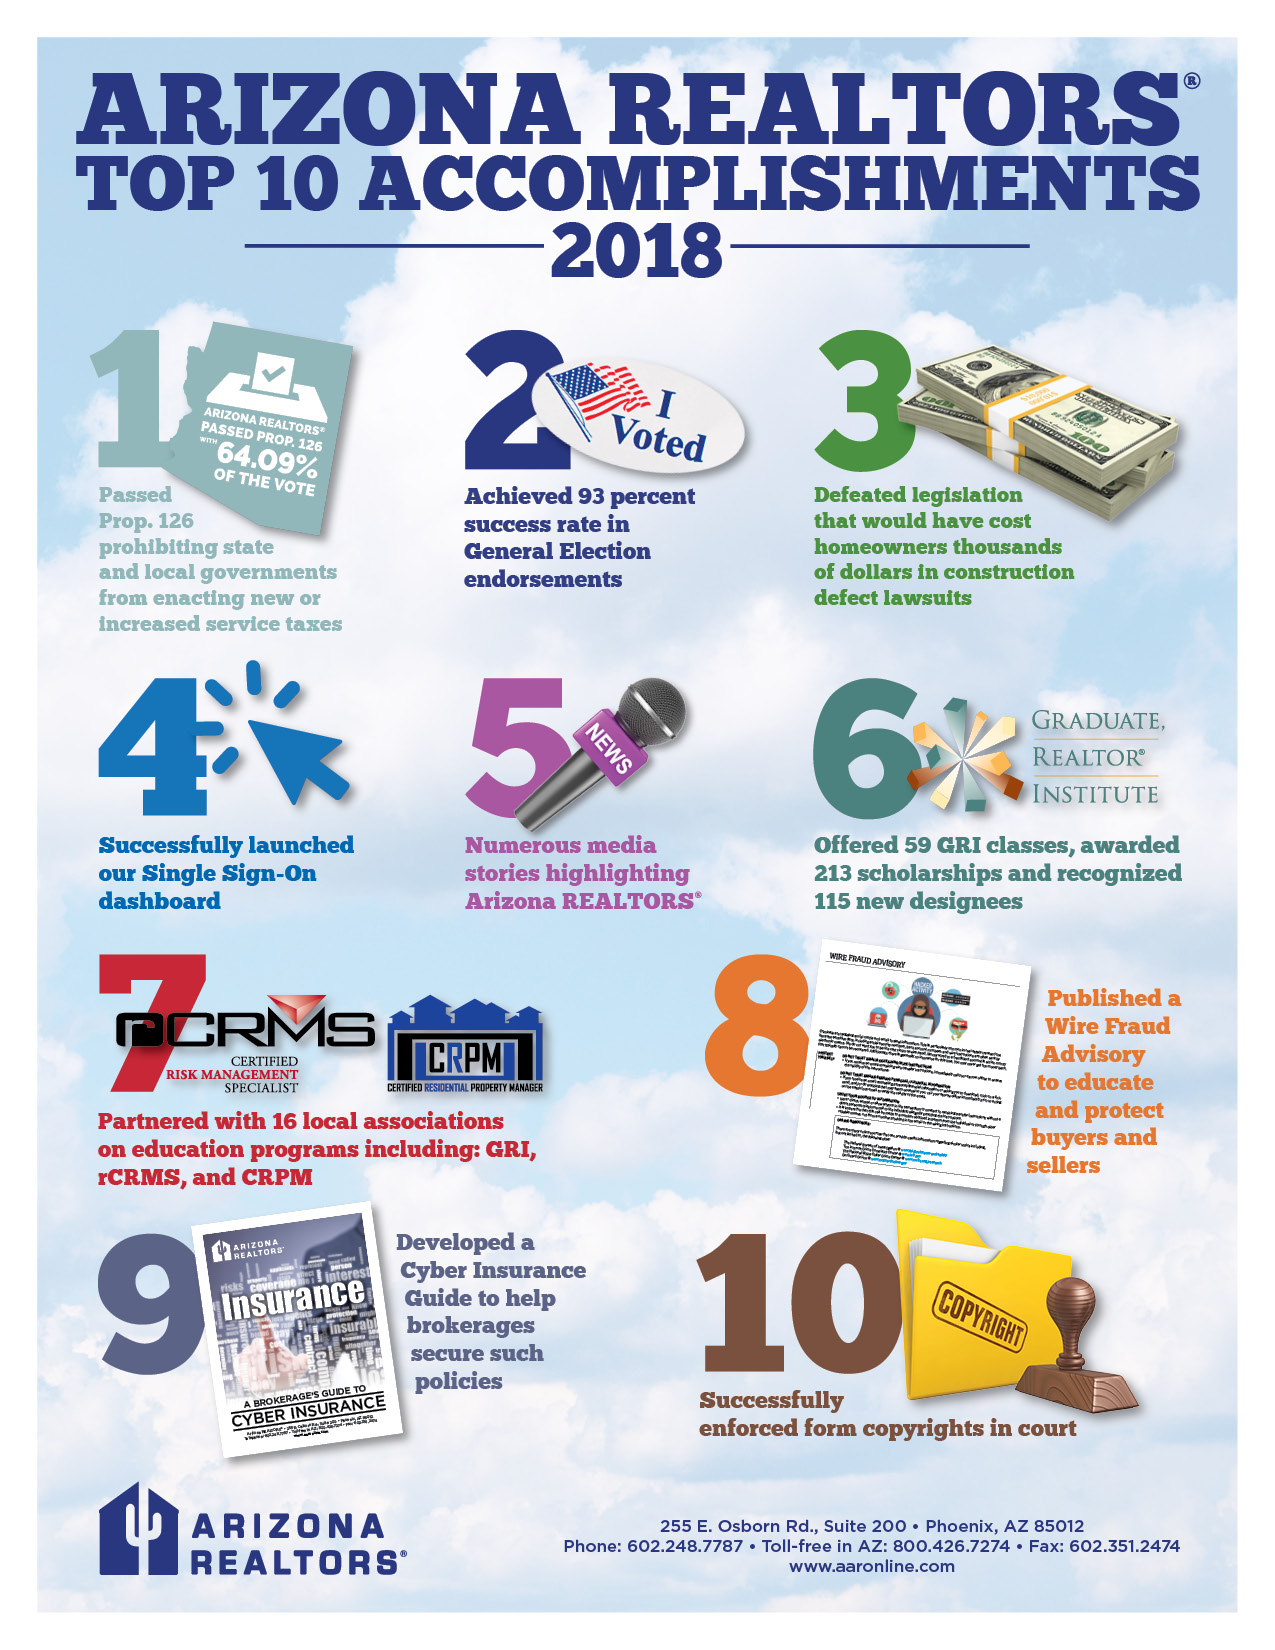 Arizona REALTORS® Top 10 Accomplishments for 2018